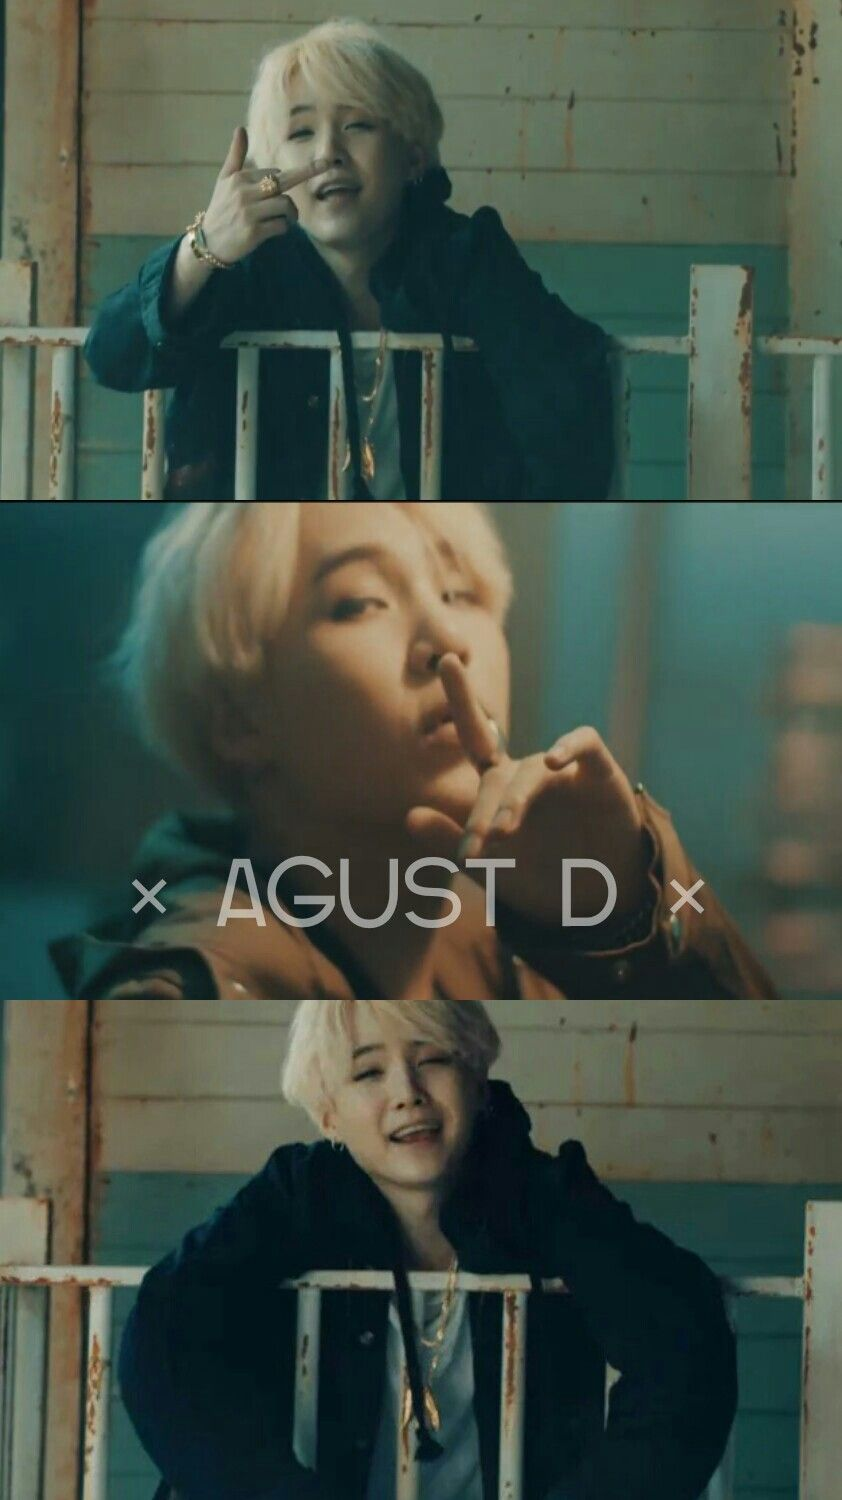 Vulgar Quotes Wallpapers Agust D Suga Wallpaper Meninos Bts Vai Casar Comigo